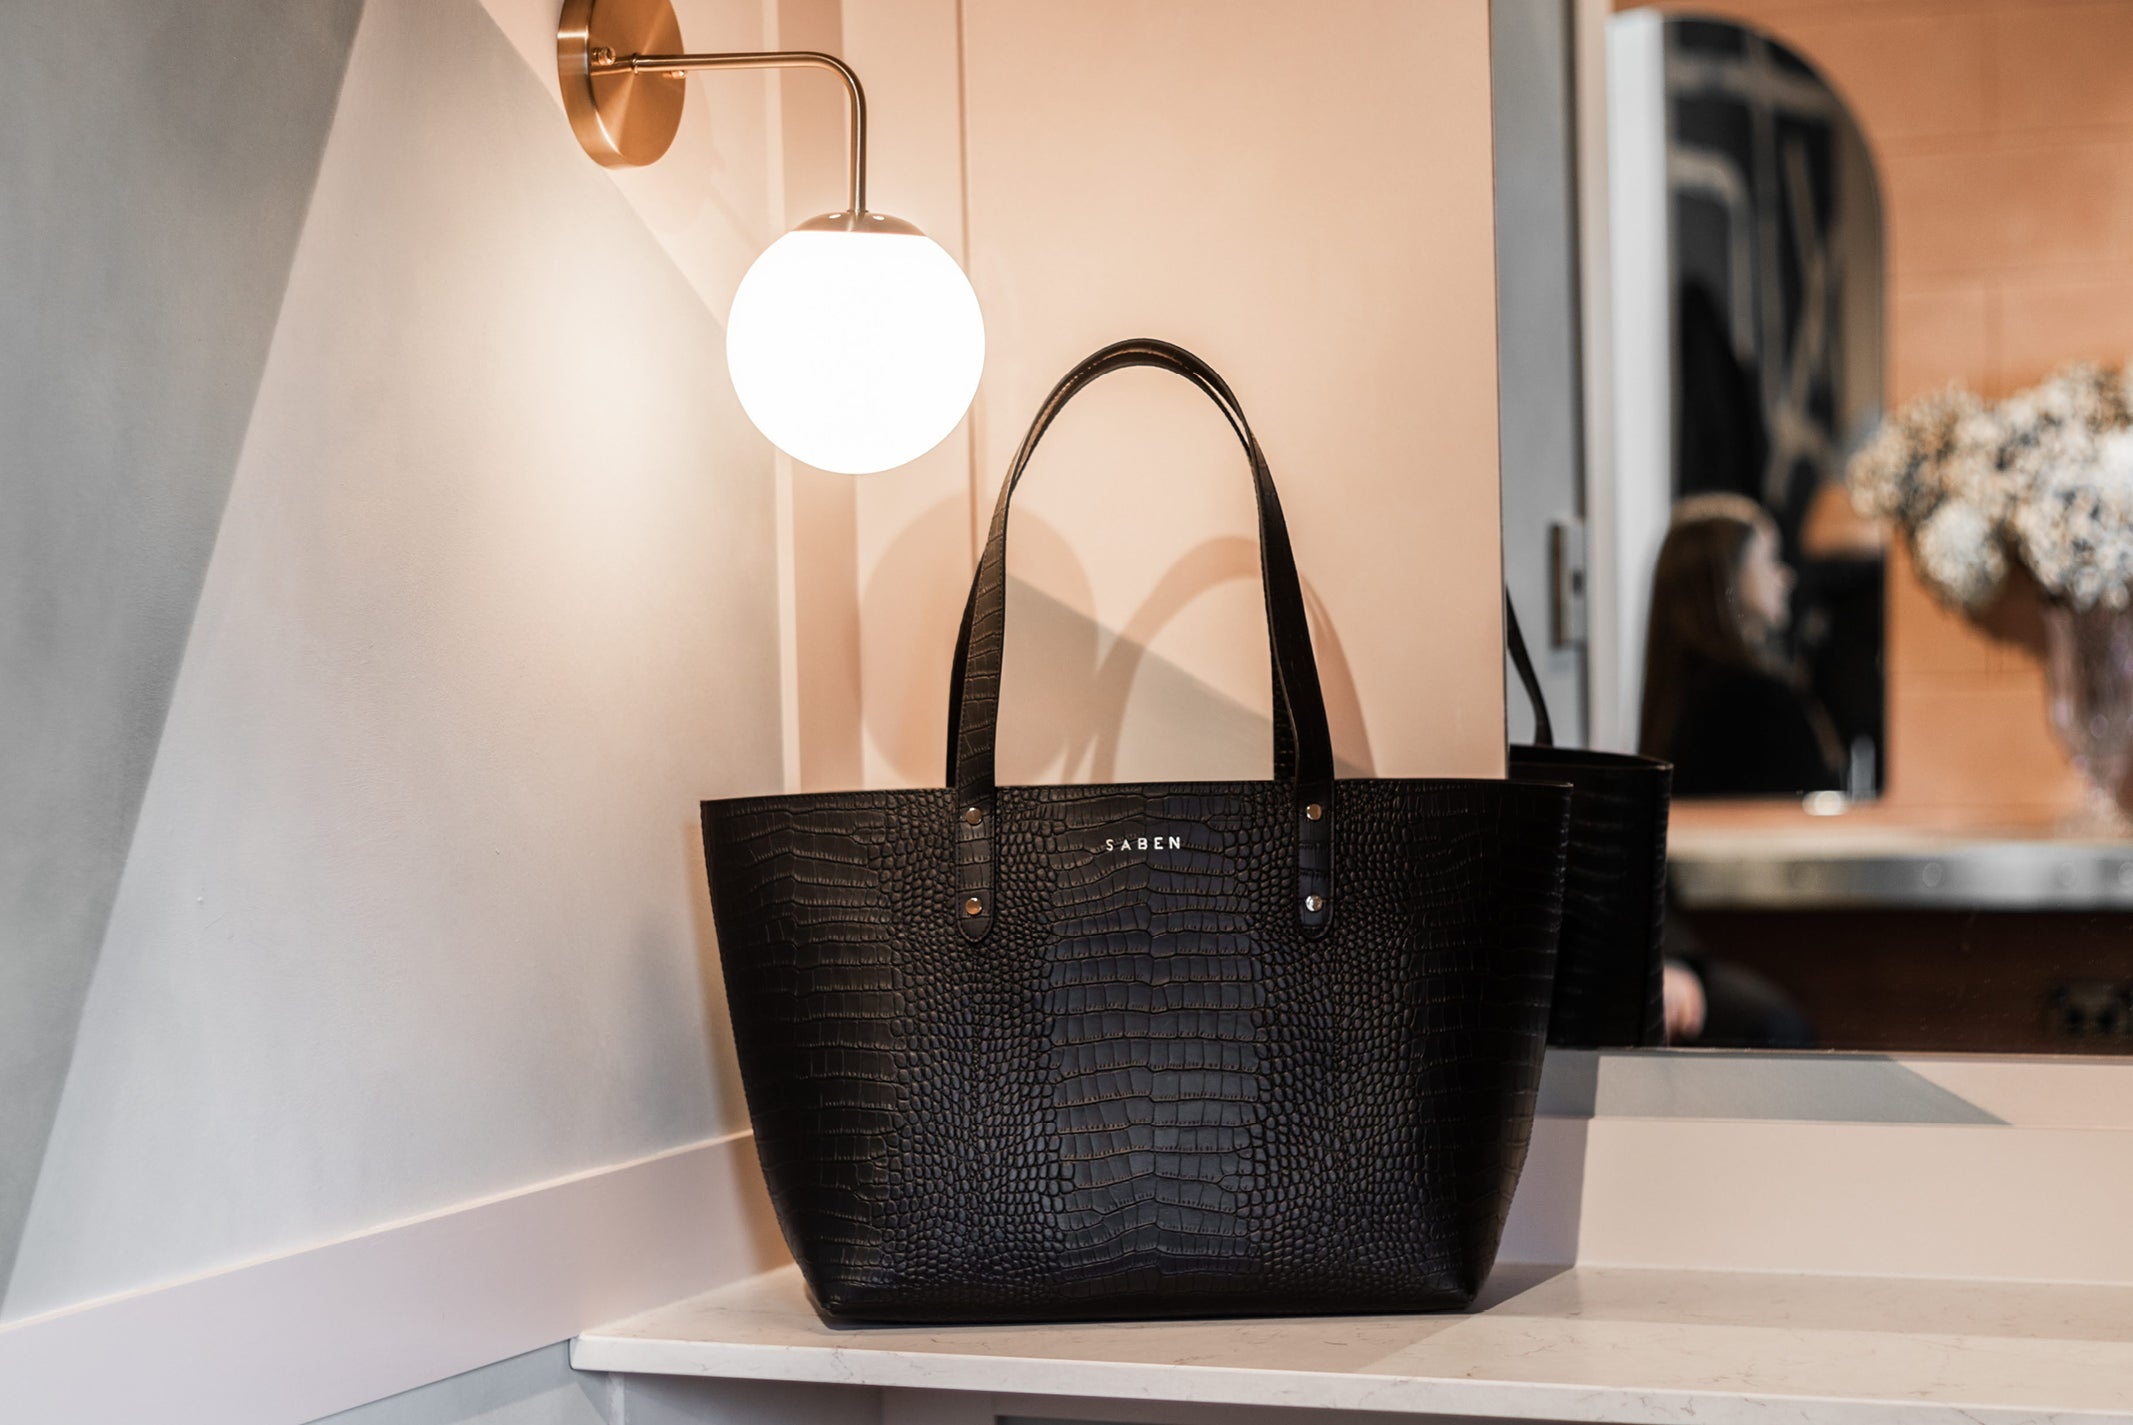 Saben Recycled Leather Kelly Tote at Inco Studios Ponsonby